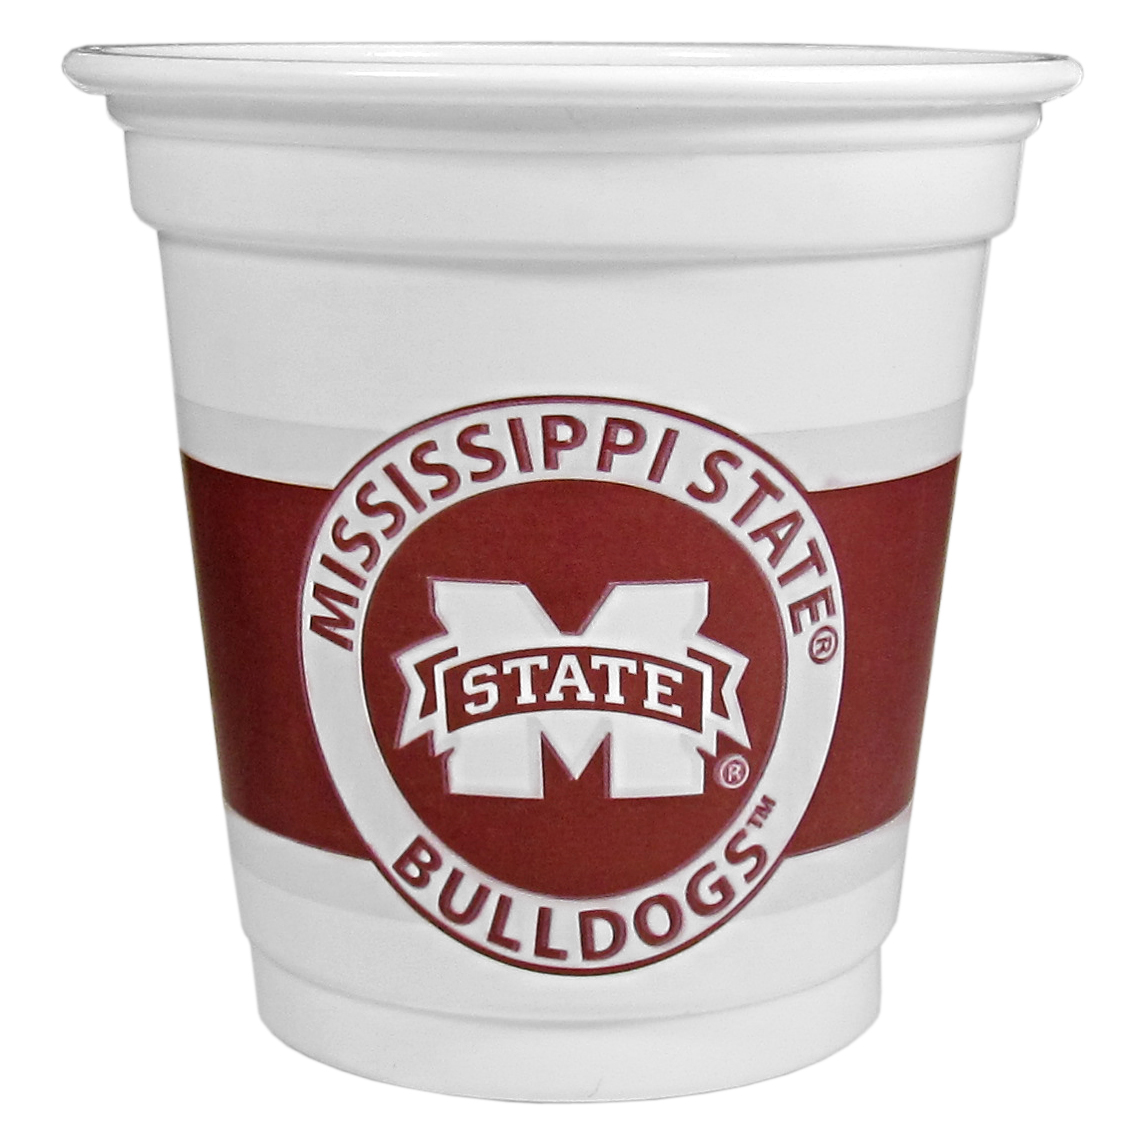 Mississippi St. Bulldogs 18 Game Day Mini Cups - No better way to show your off your team pride on game day than these Mississippi St. Bulldogs game day mini cups. The 3 ounce disposable glasses are the perfect addition to your game day party or tailgating BBQ. The cups come in a sleeve of 18 to make sure everyone is sporting true team spirit!